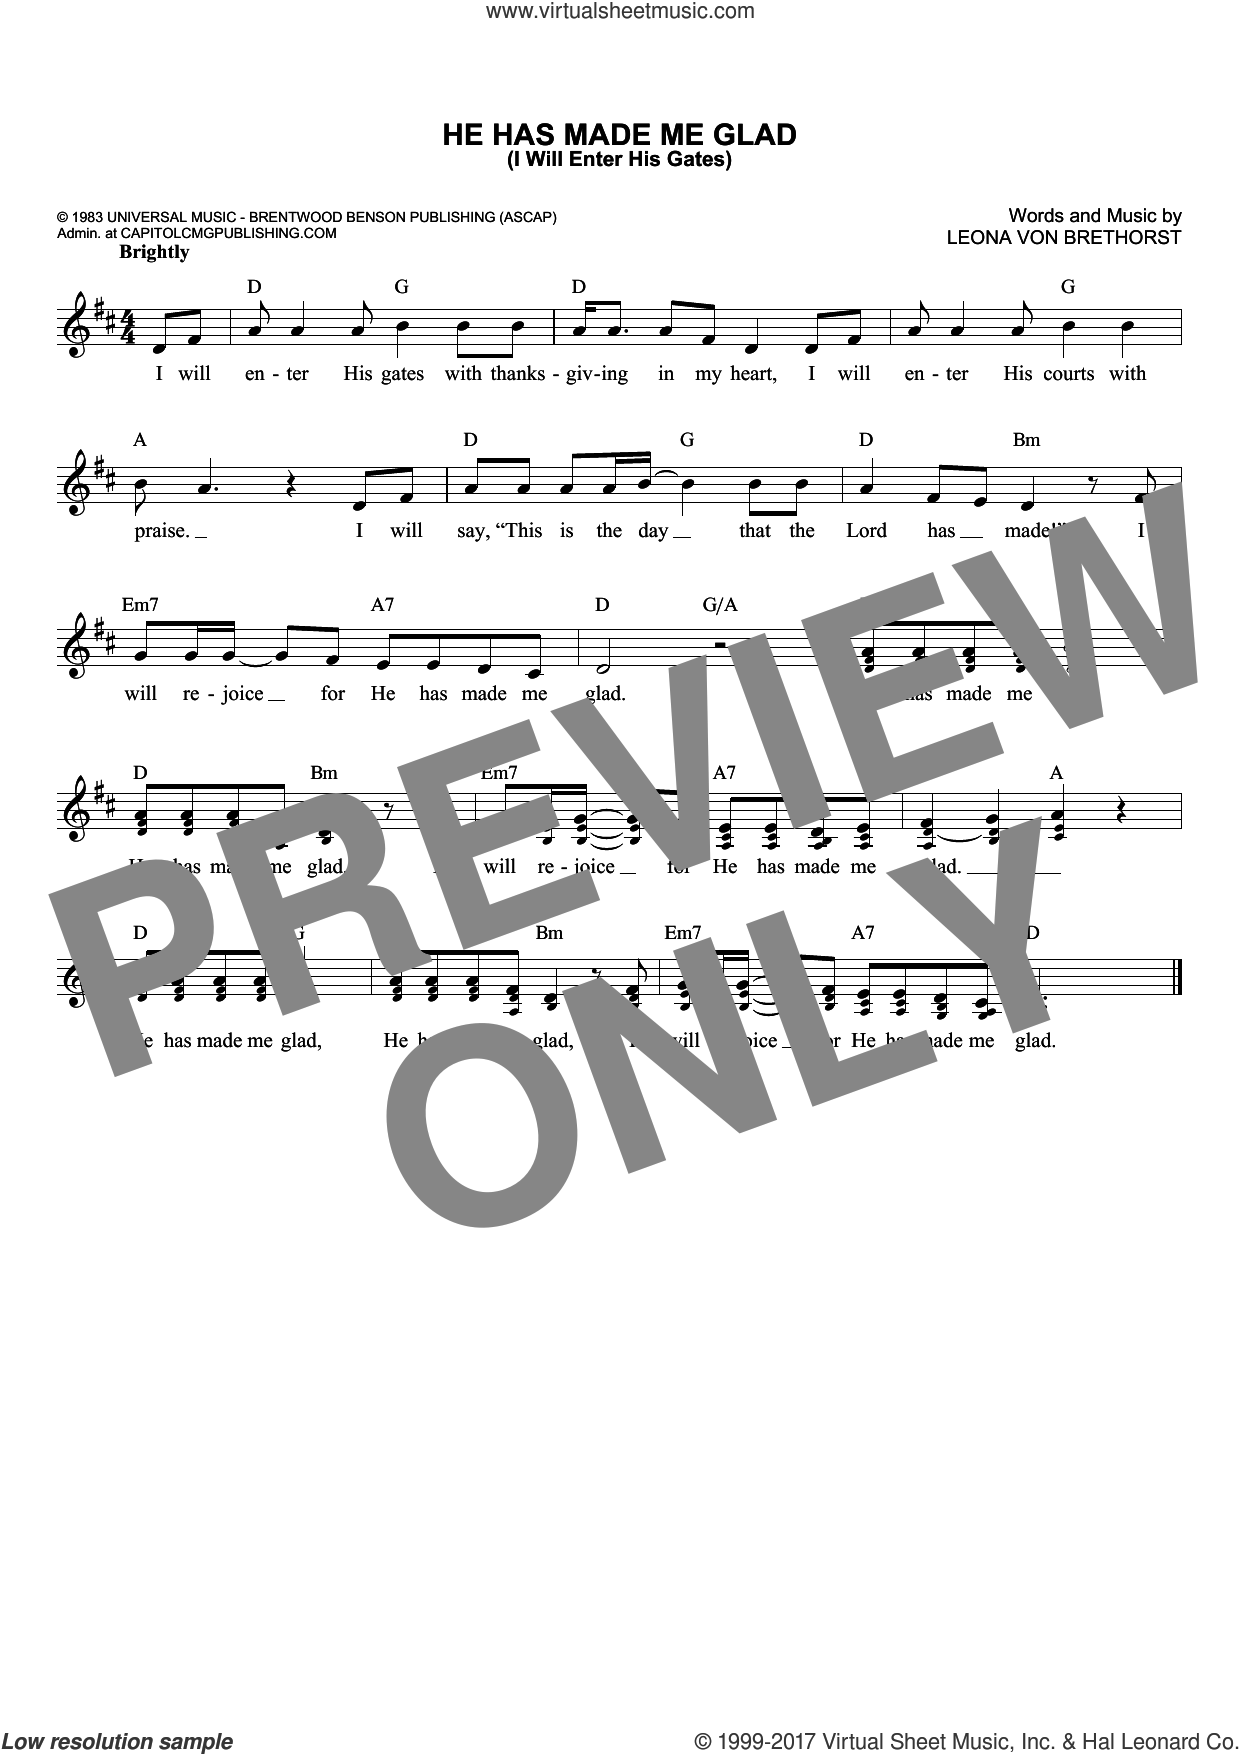 He Has Made Me Glad (I Will Enter His Gates) sheet music for voice and other instruments (fake book) by Leona Von Brethorst, intermediate voice. Score Image Preview.